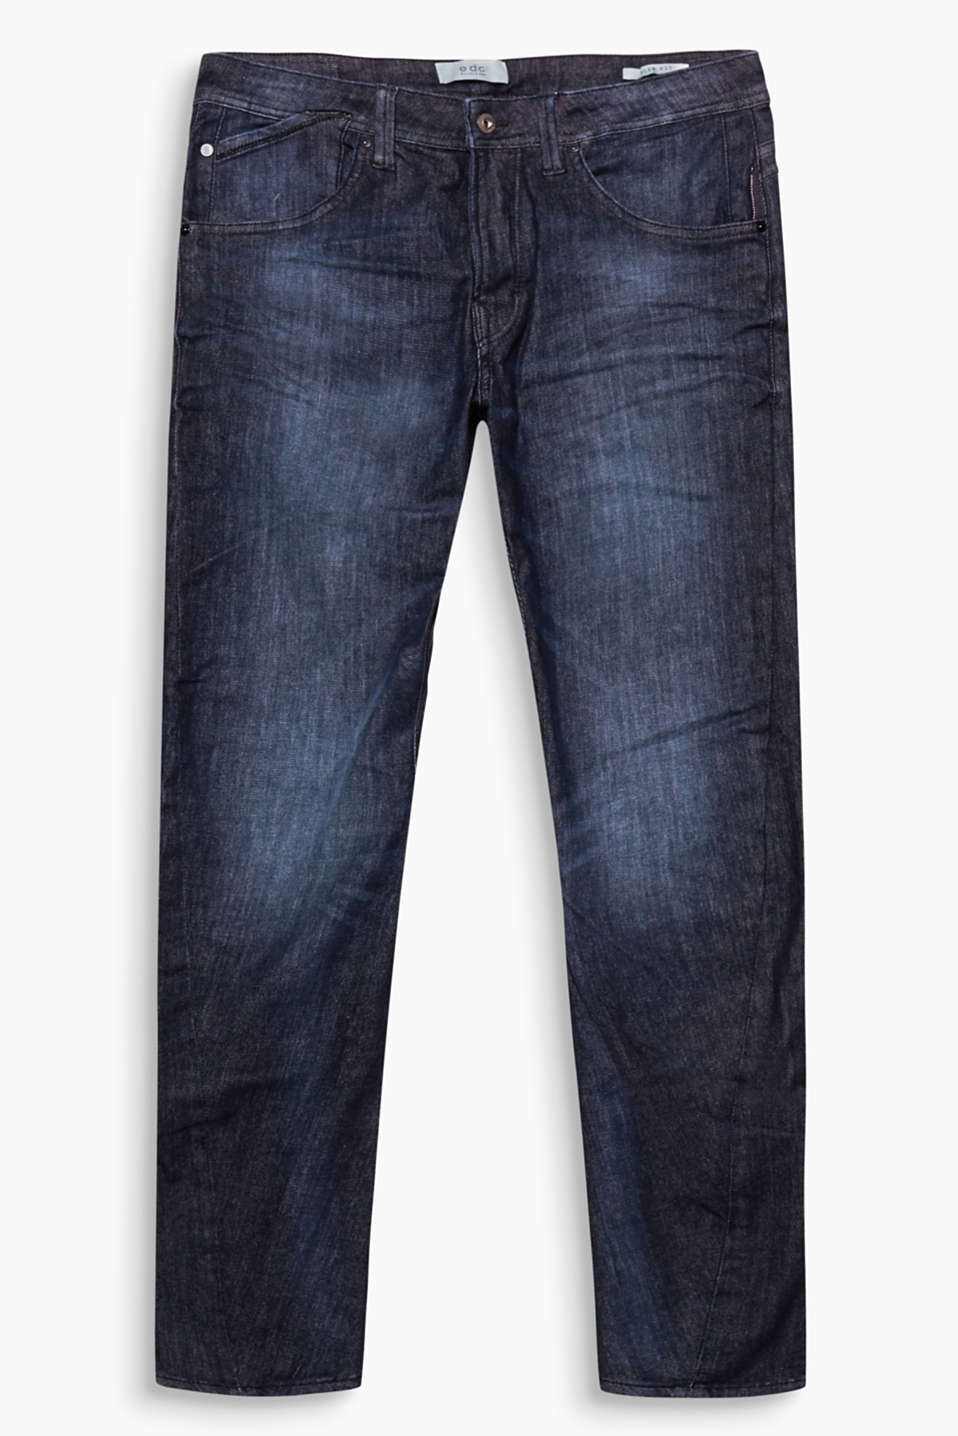 We love denim! These five-pocket jeans with organic cotton is an urban classic.